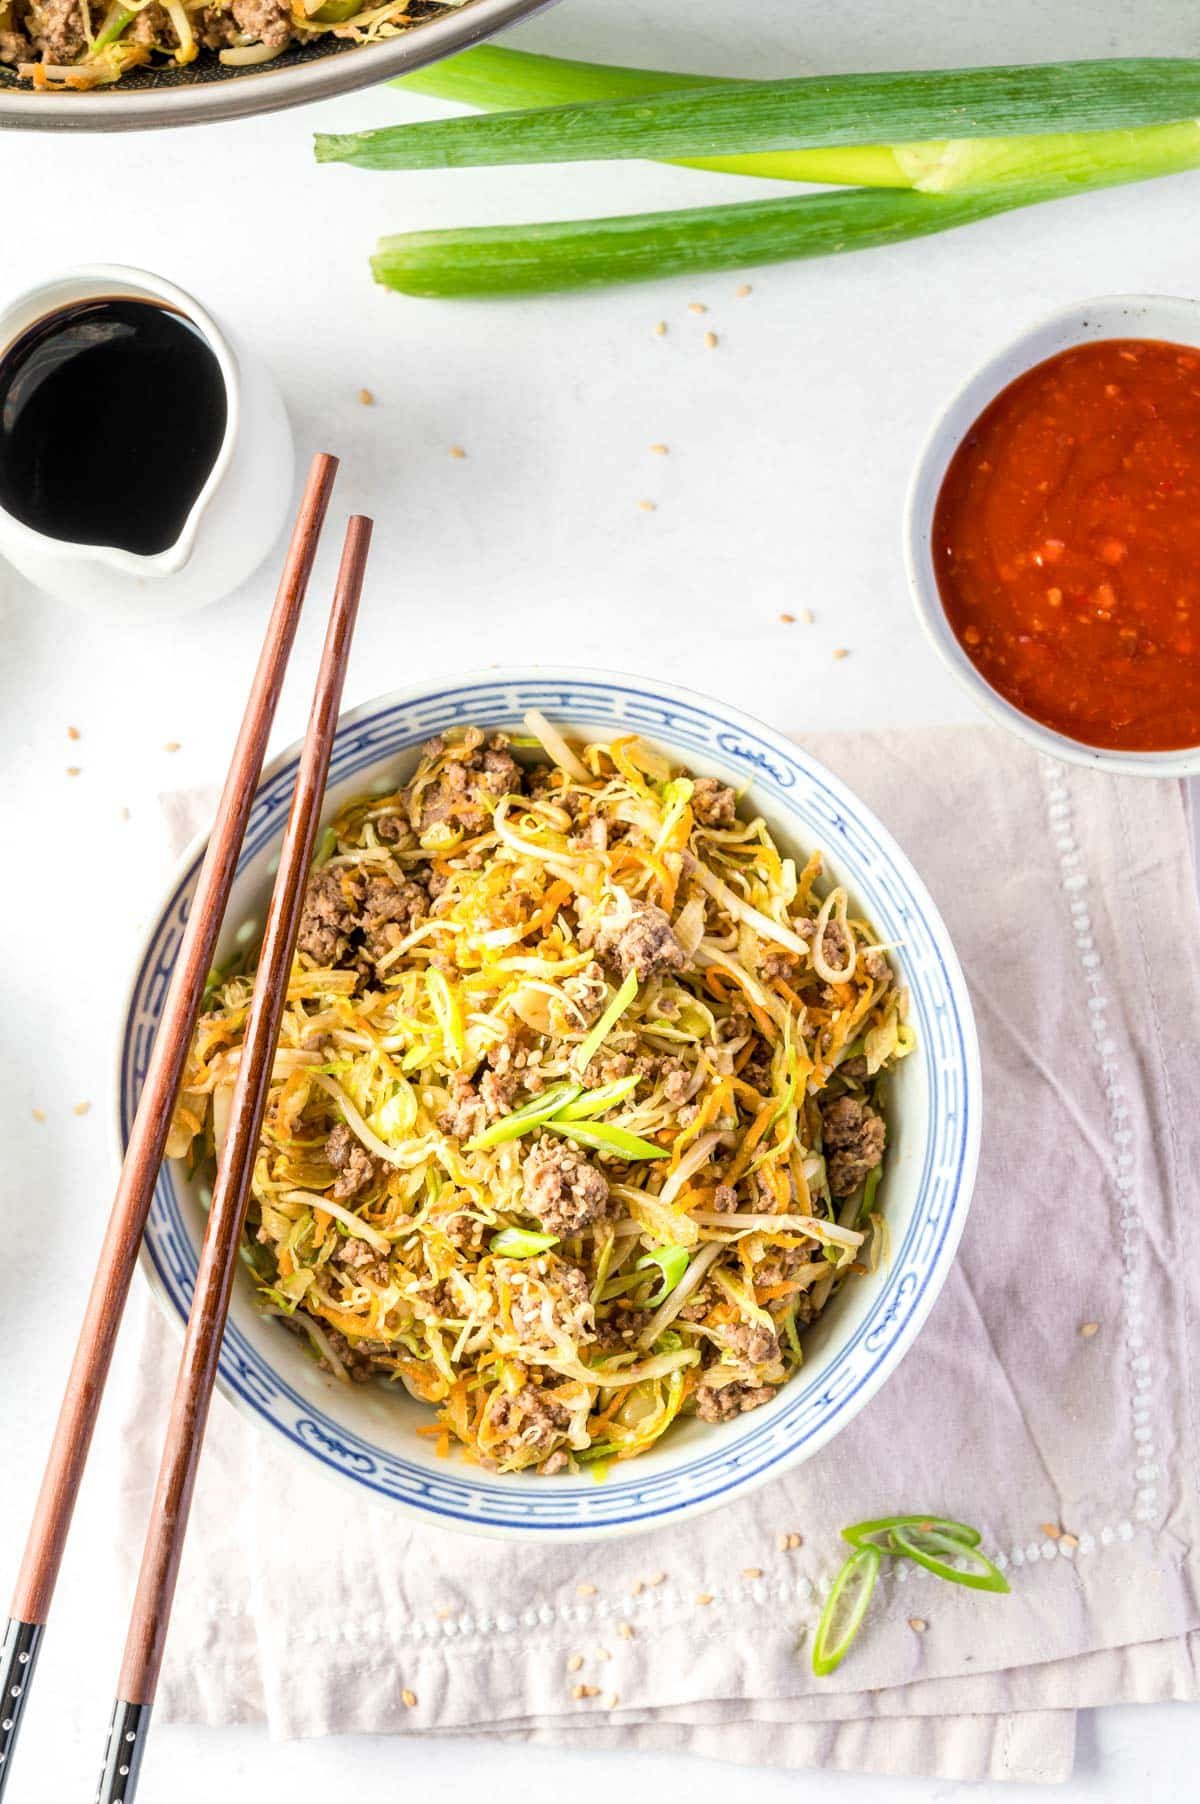 egg roll bowl with chopsticks, green onion, and sauce